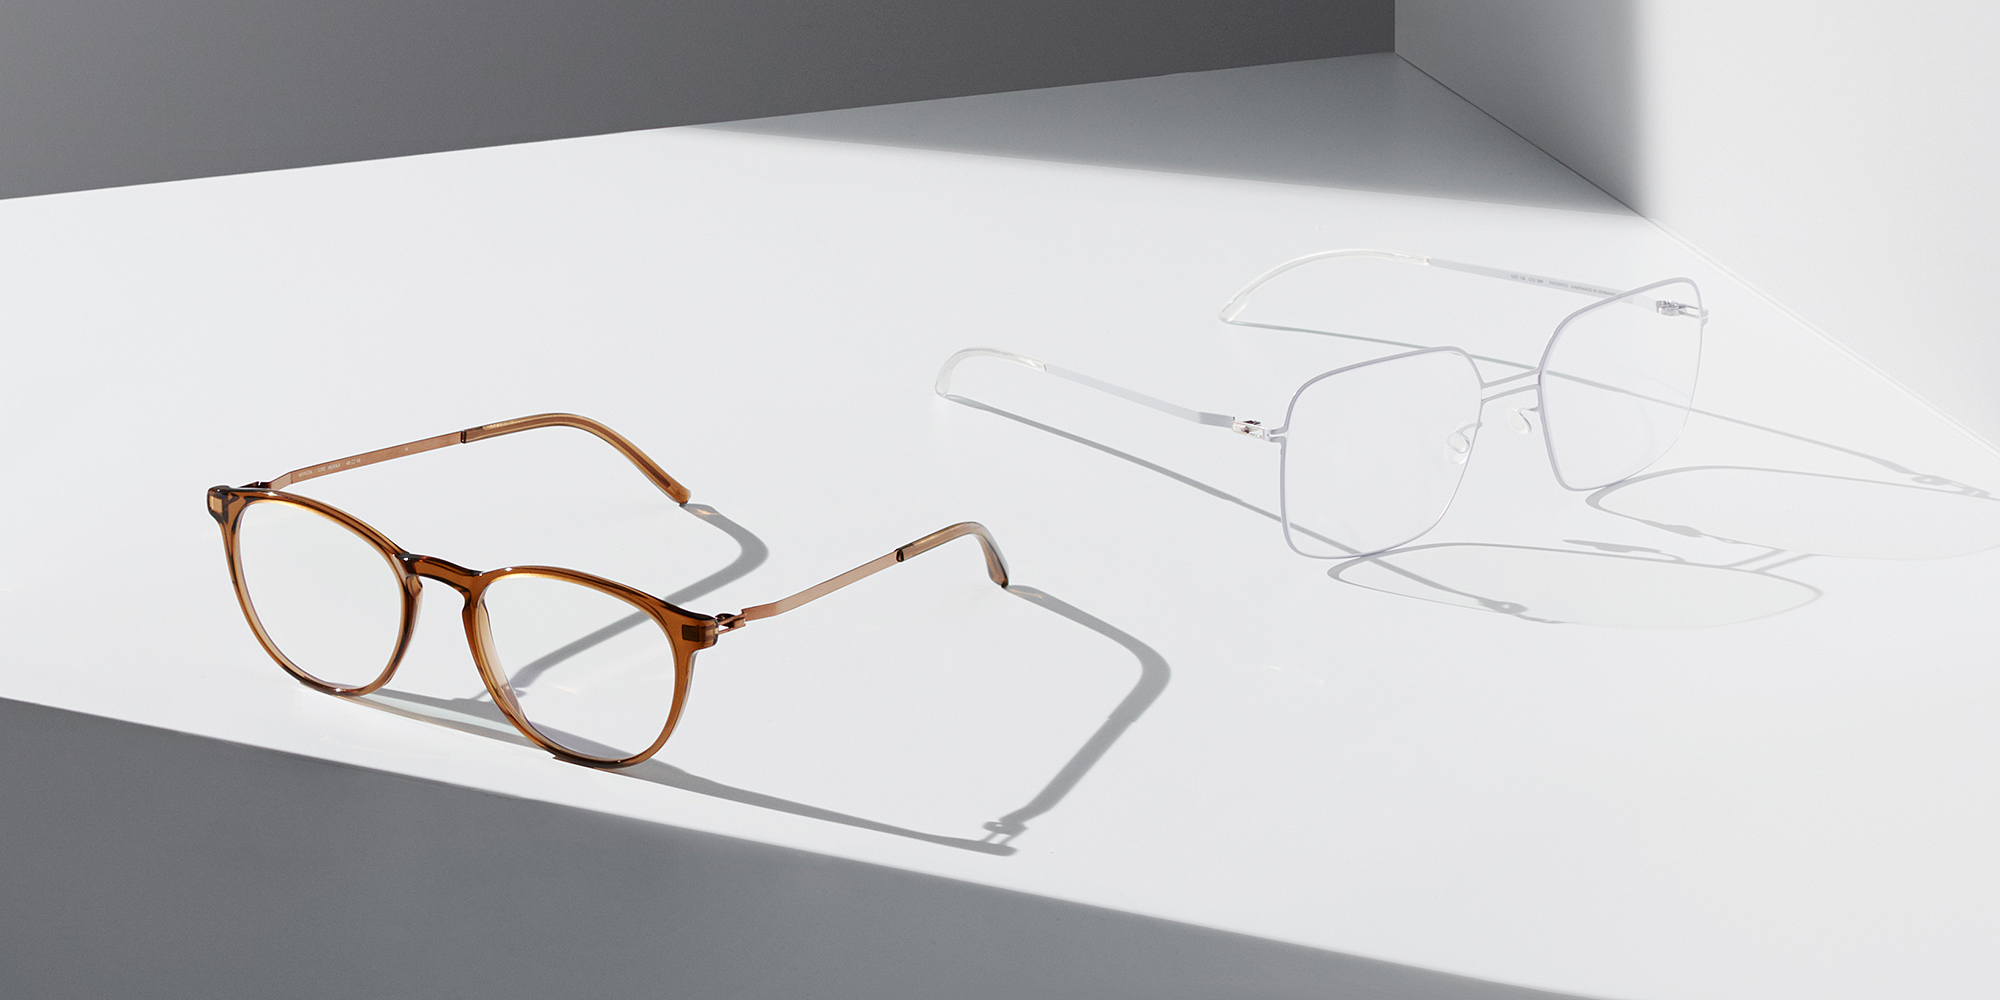 MYKITA New Arrivals Silmo Optical Glasses MYKITA Lite Acetate Rx Nukka C73 Topaz Shiny Copper Clear MYKITA Lite Rx Grey